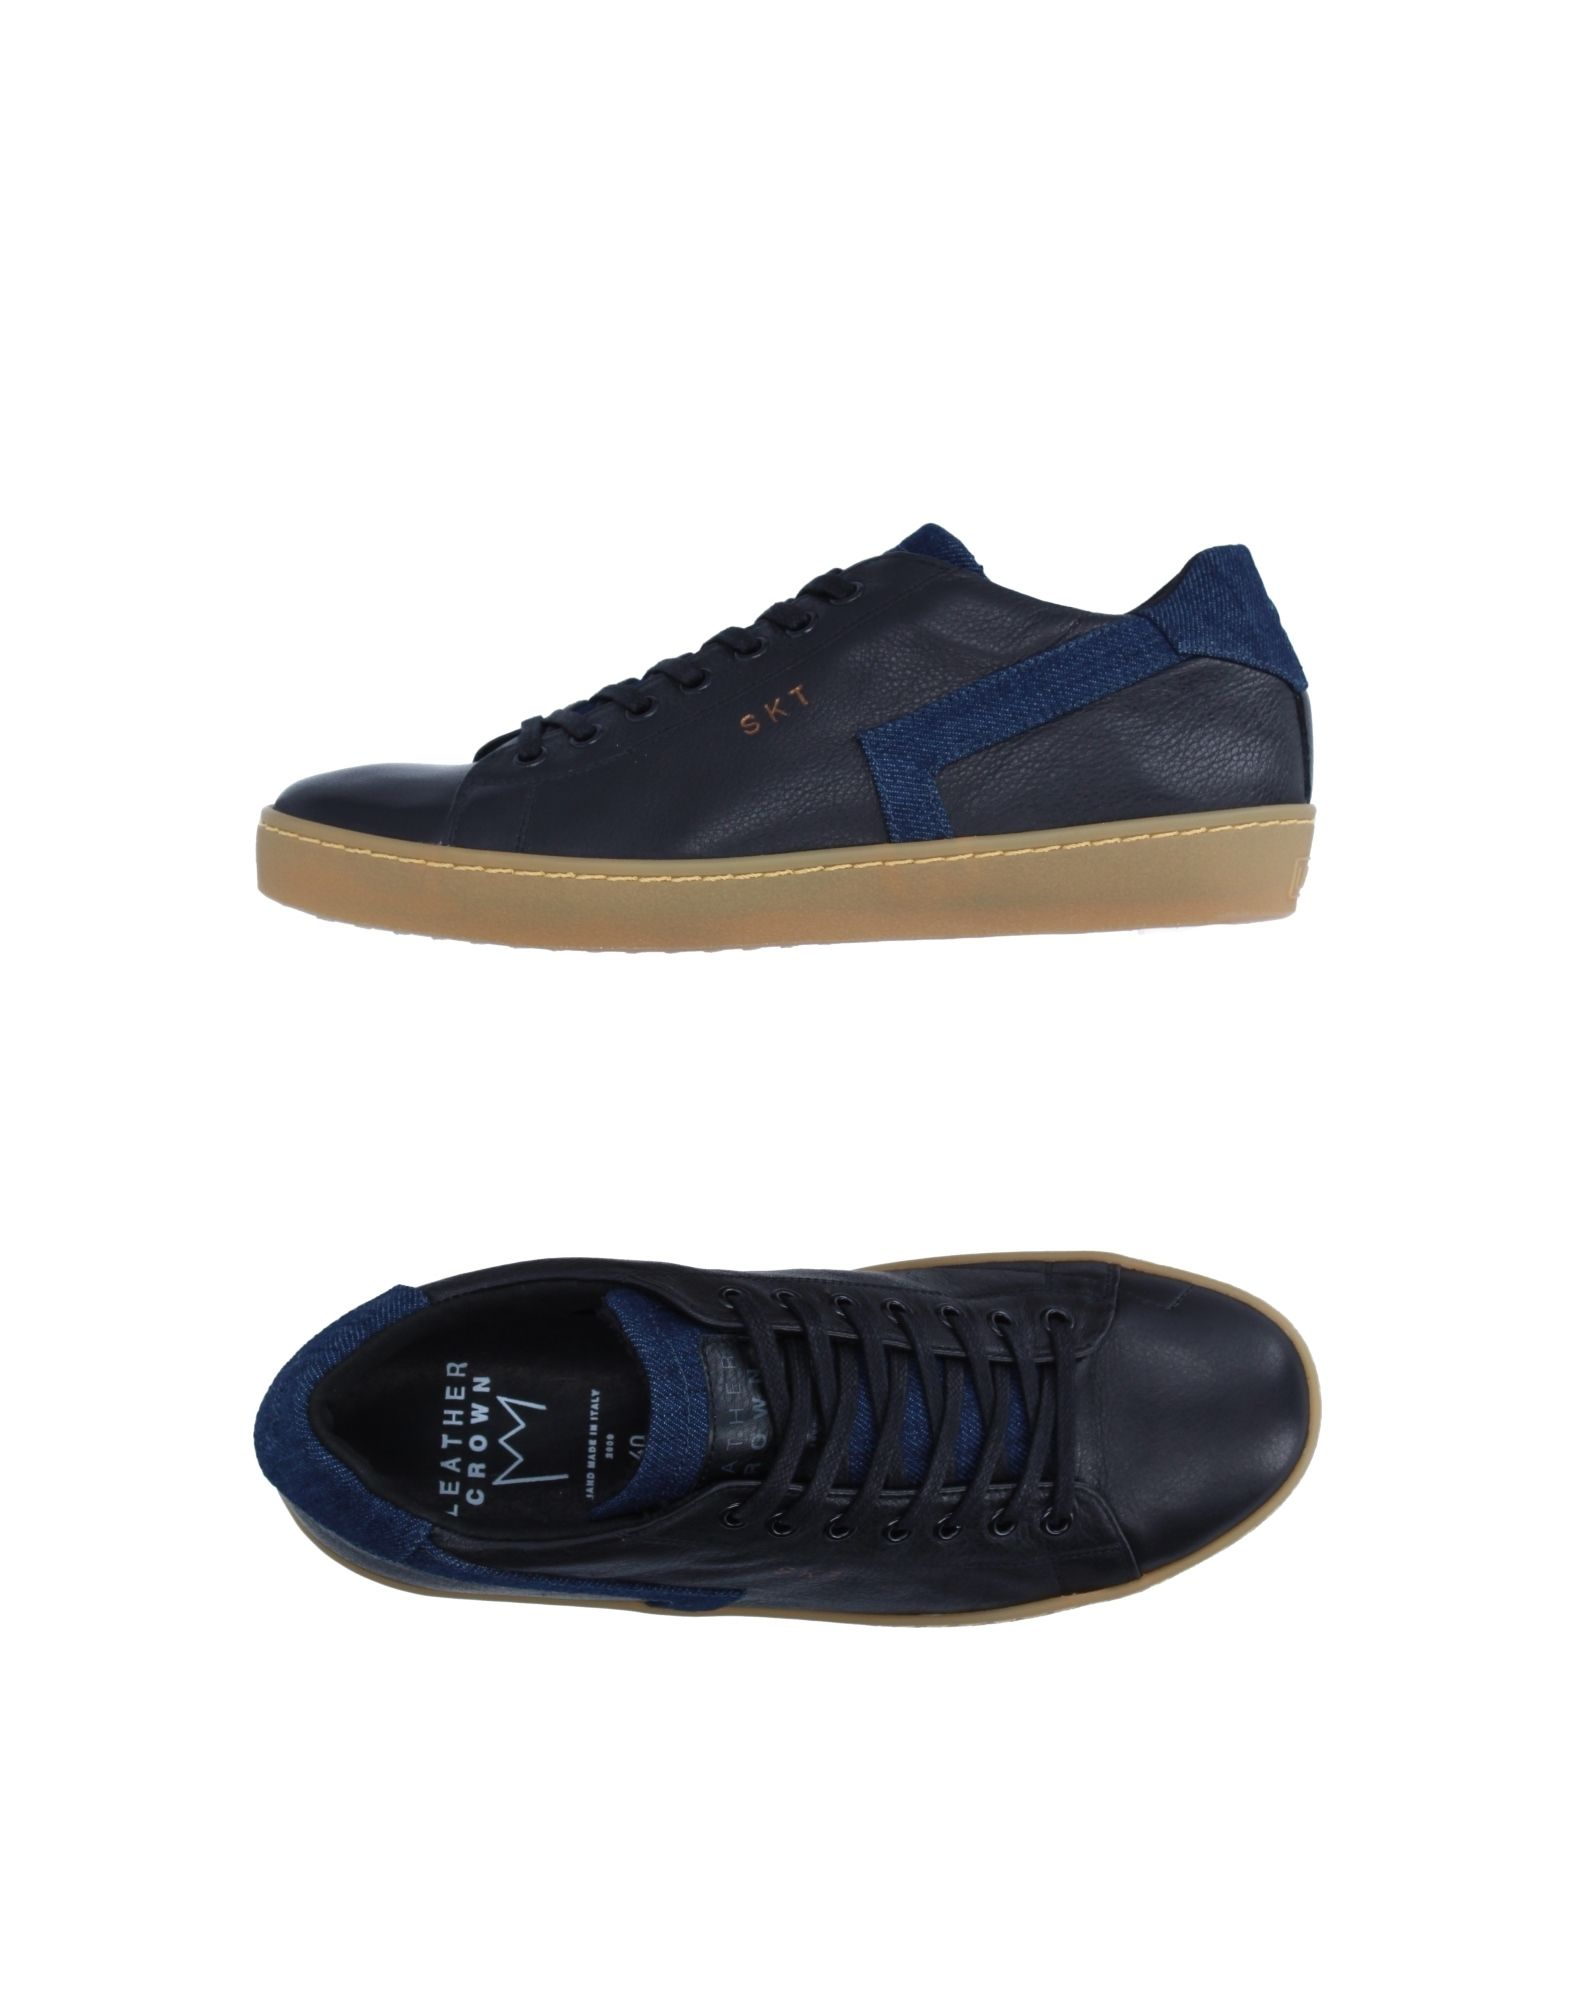 Sneakers Leather Crown 11254116AB Uomo - 11254116AB Crown 5bec97